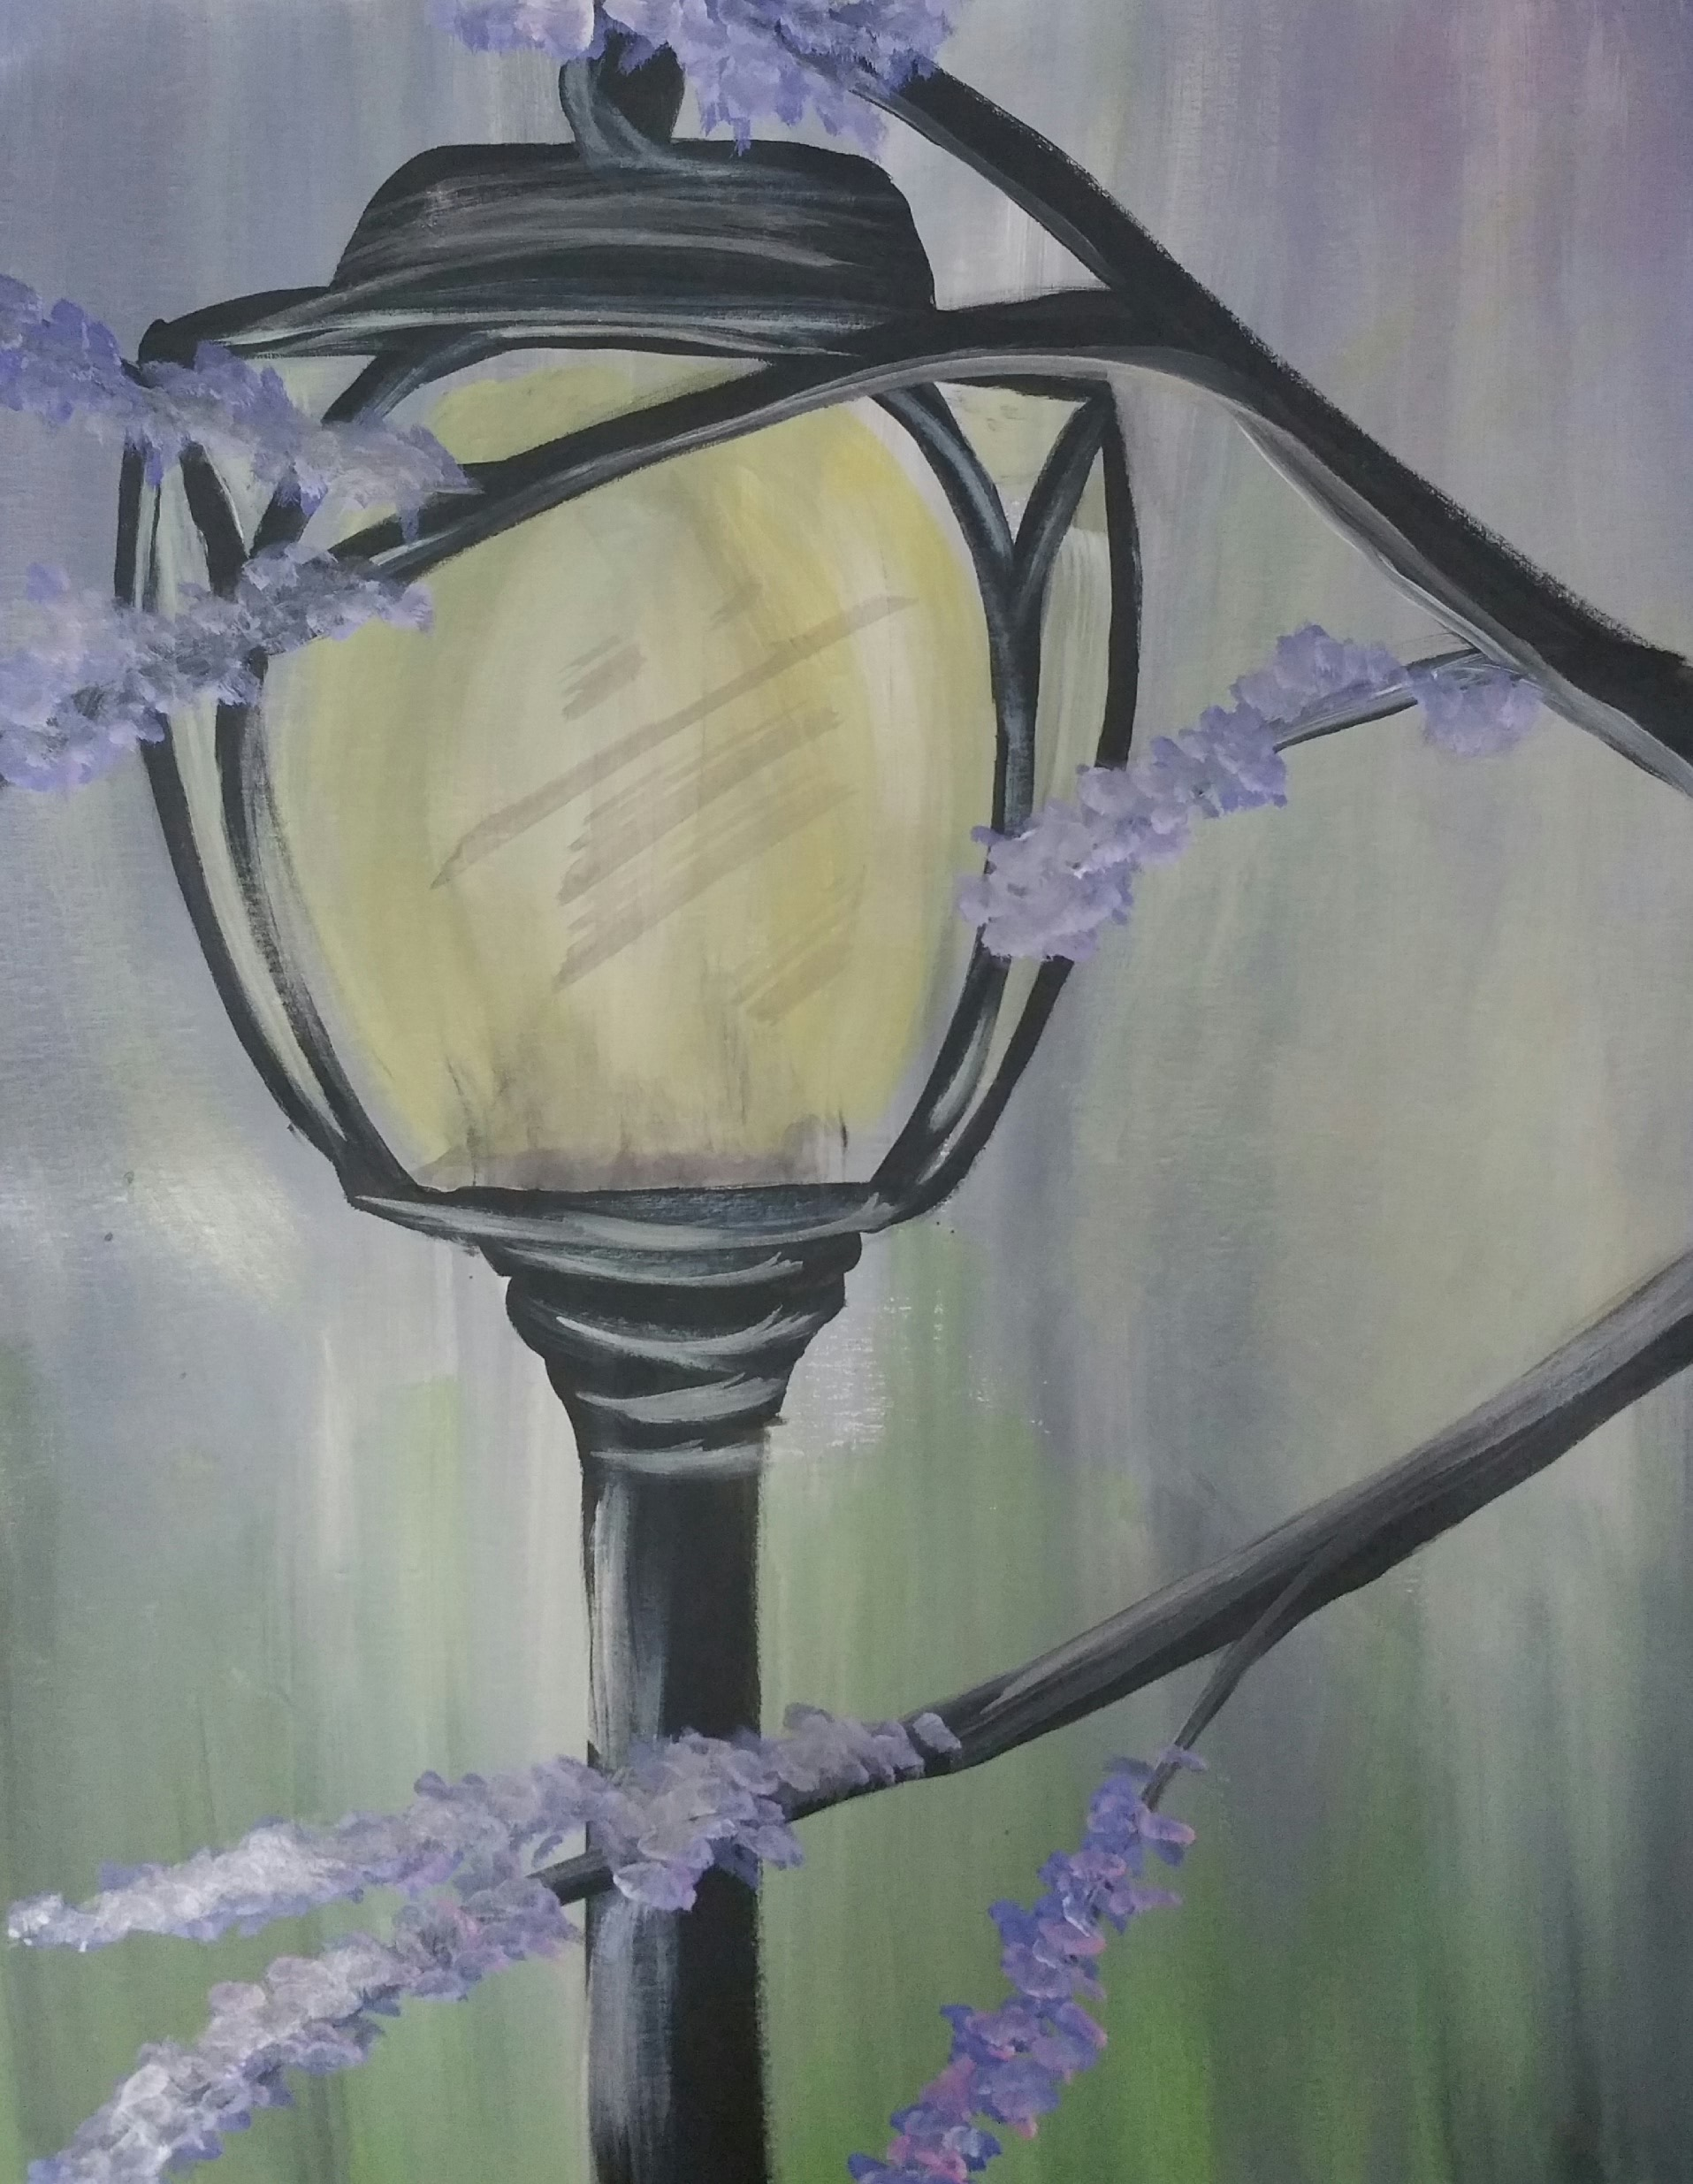 Lamp post painting